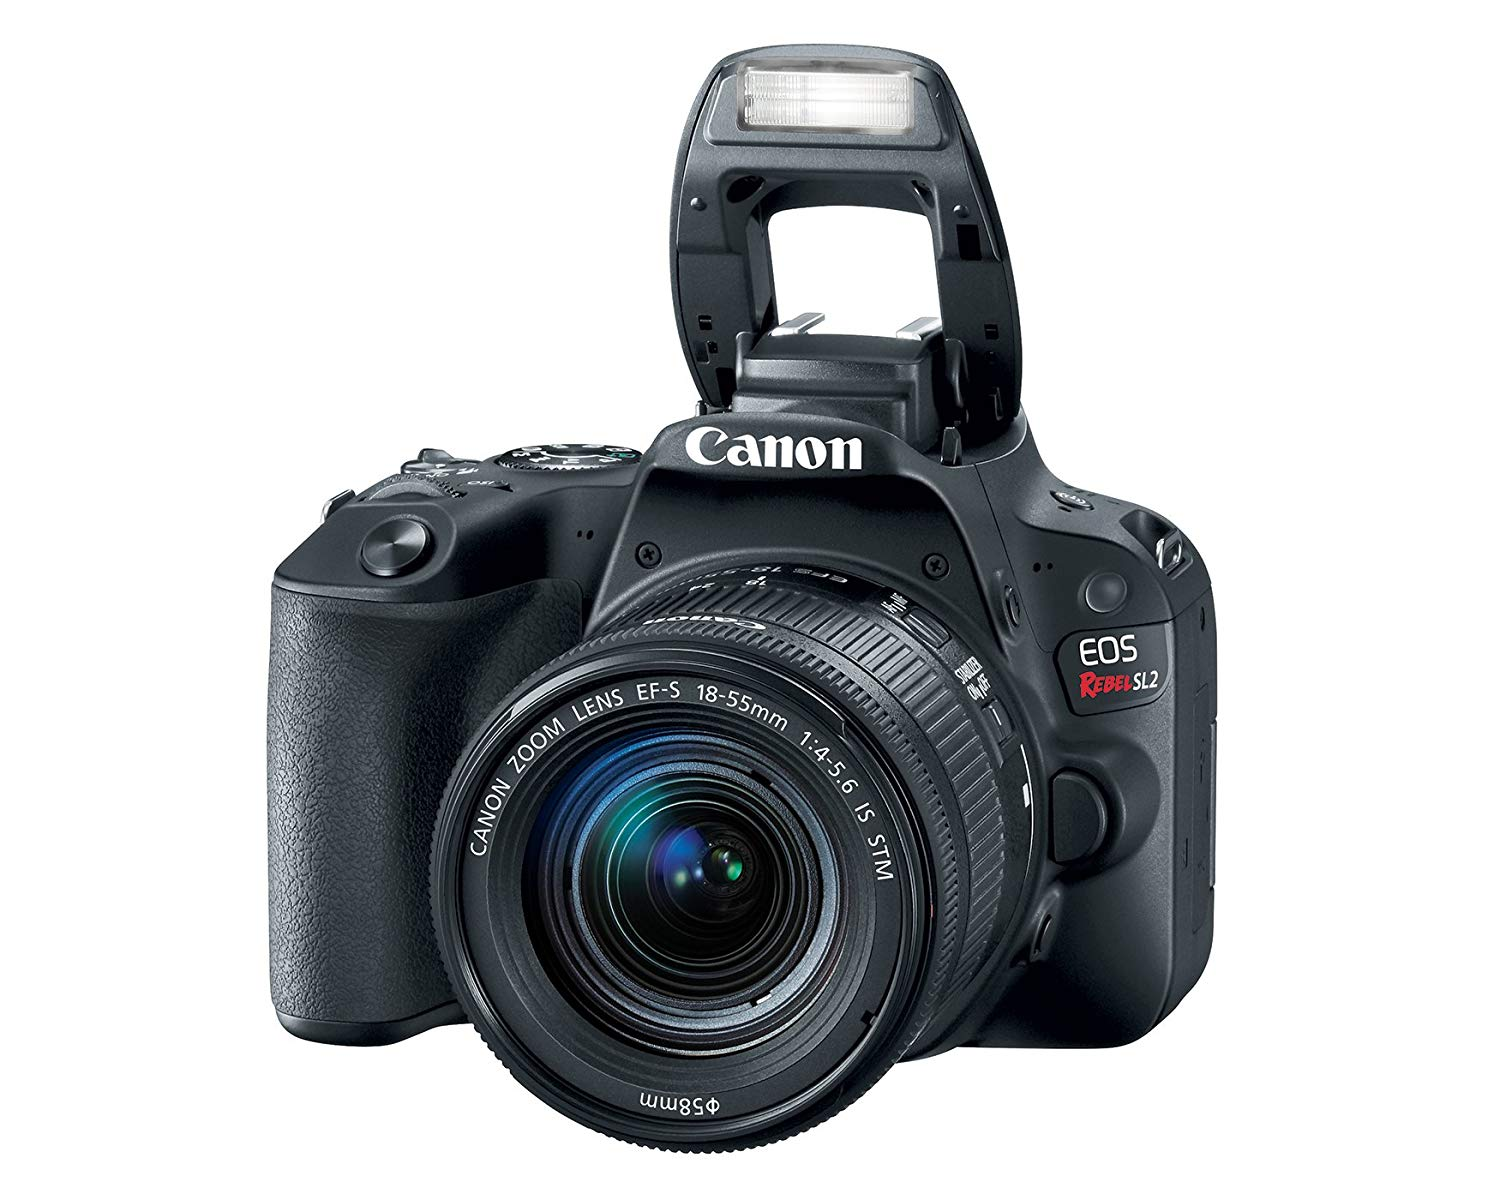 Canon EOS Rebel SL2 EFS 1855mm IS STM Black Digital Camera get best offers deals free and coupons online at buythevalue.in